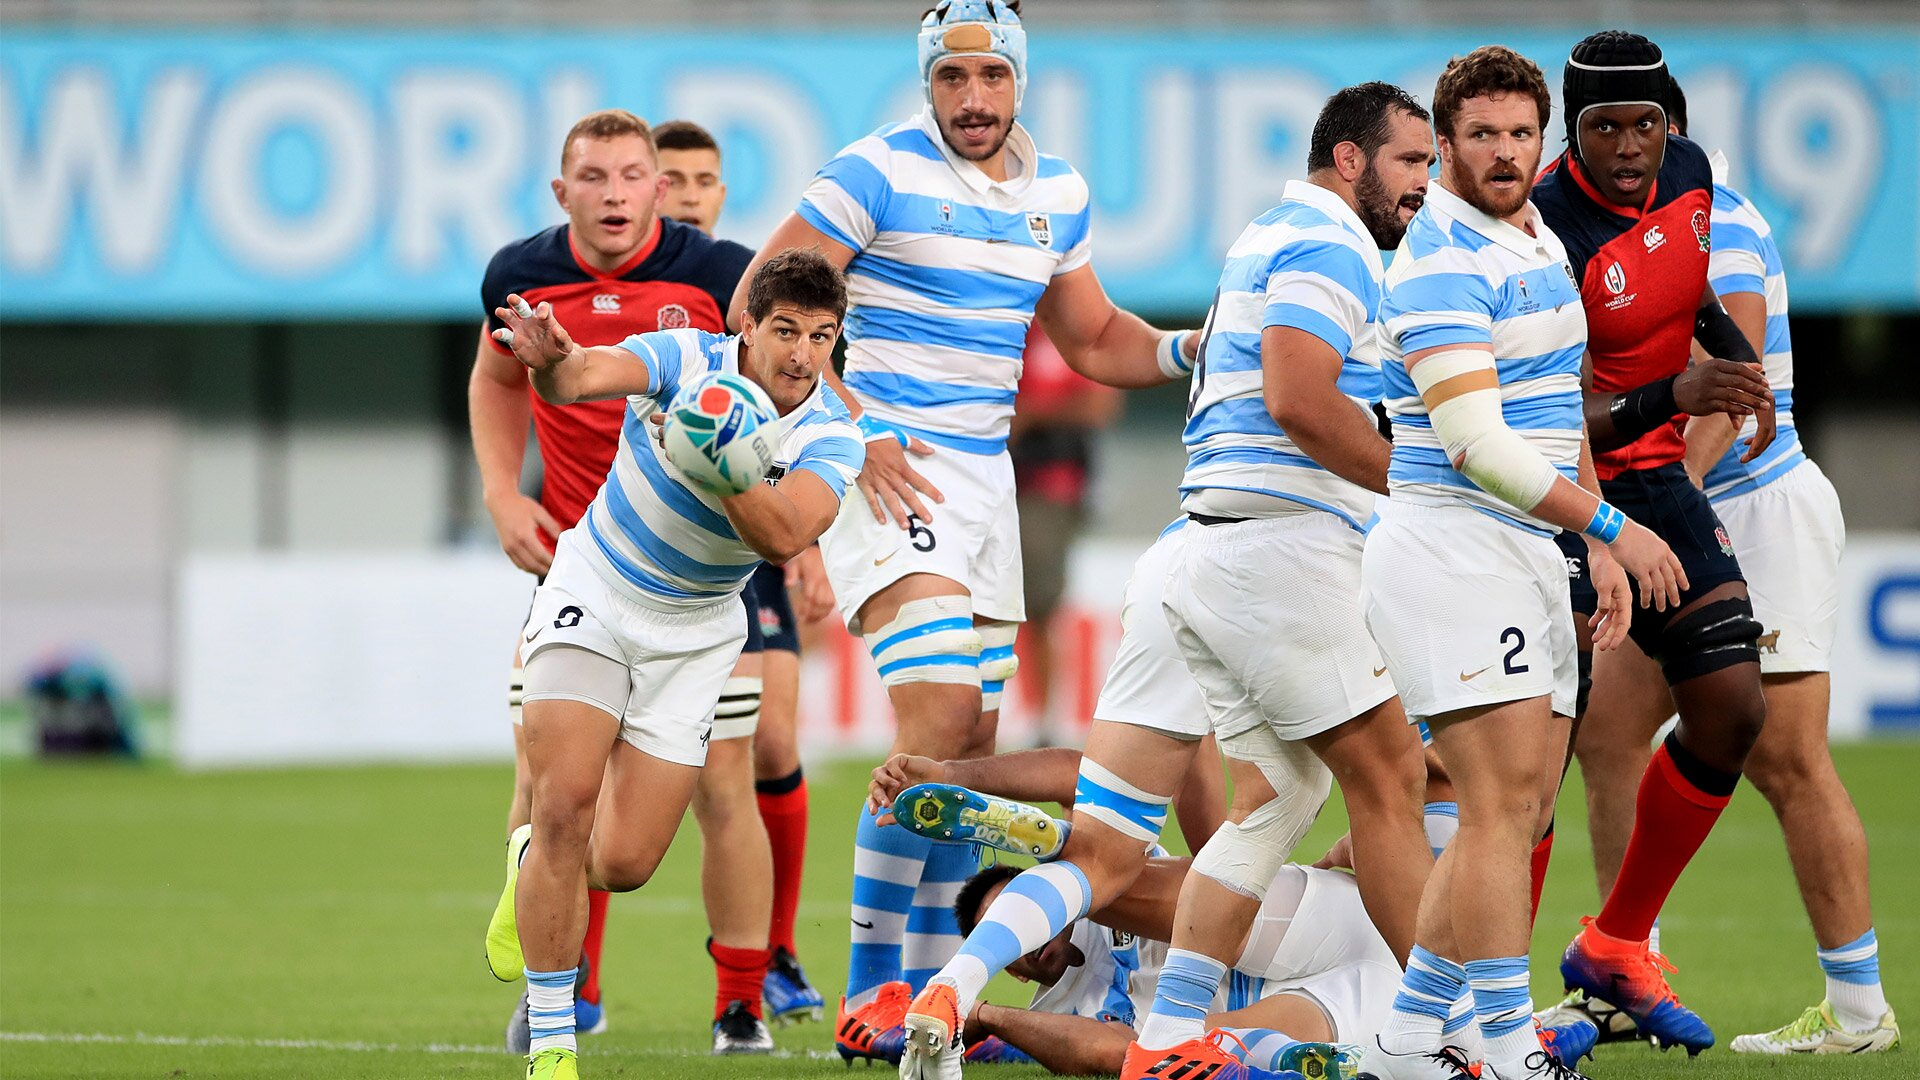 Super Rugby retains its South American flavour after Western Force sign two star Pumas